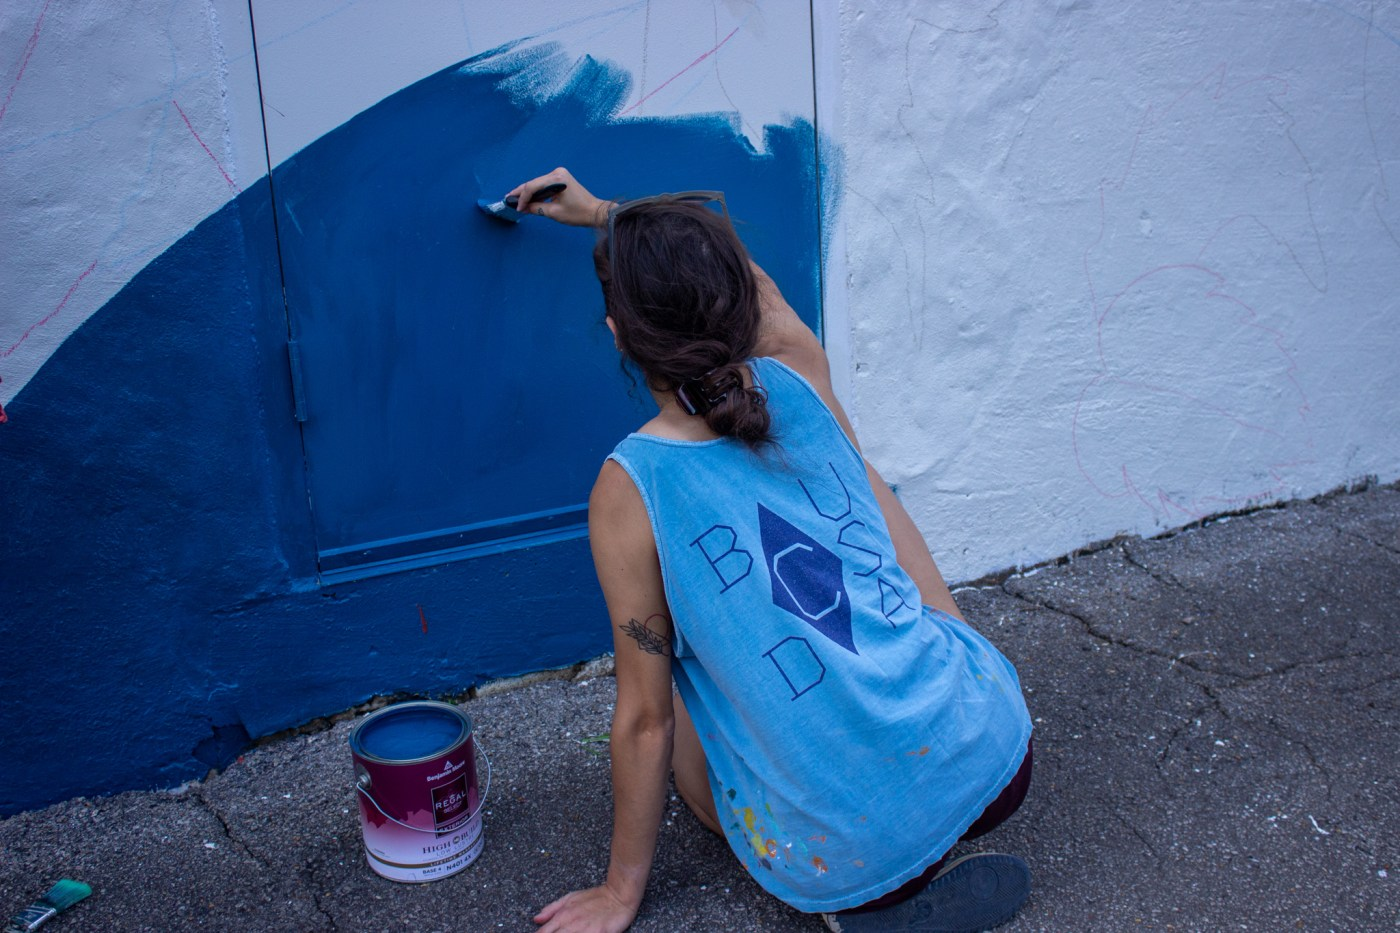 Mary Grace Tracy is working on the mural at Sozo. Photo by Libby Foster for Bham Now.